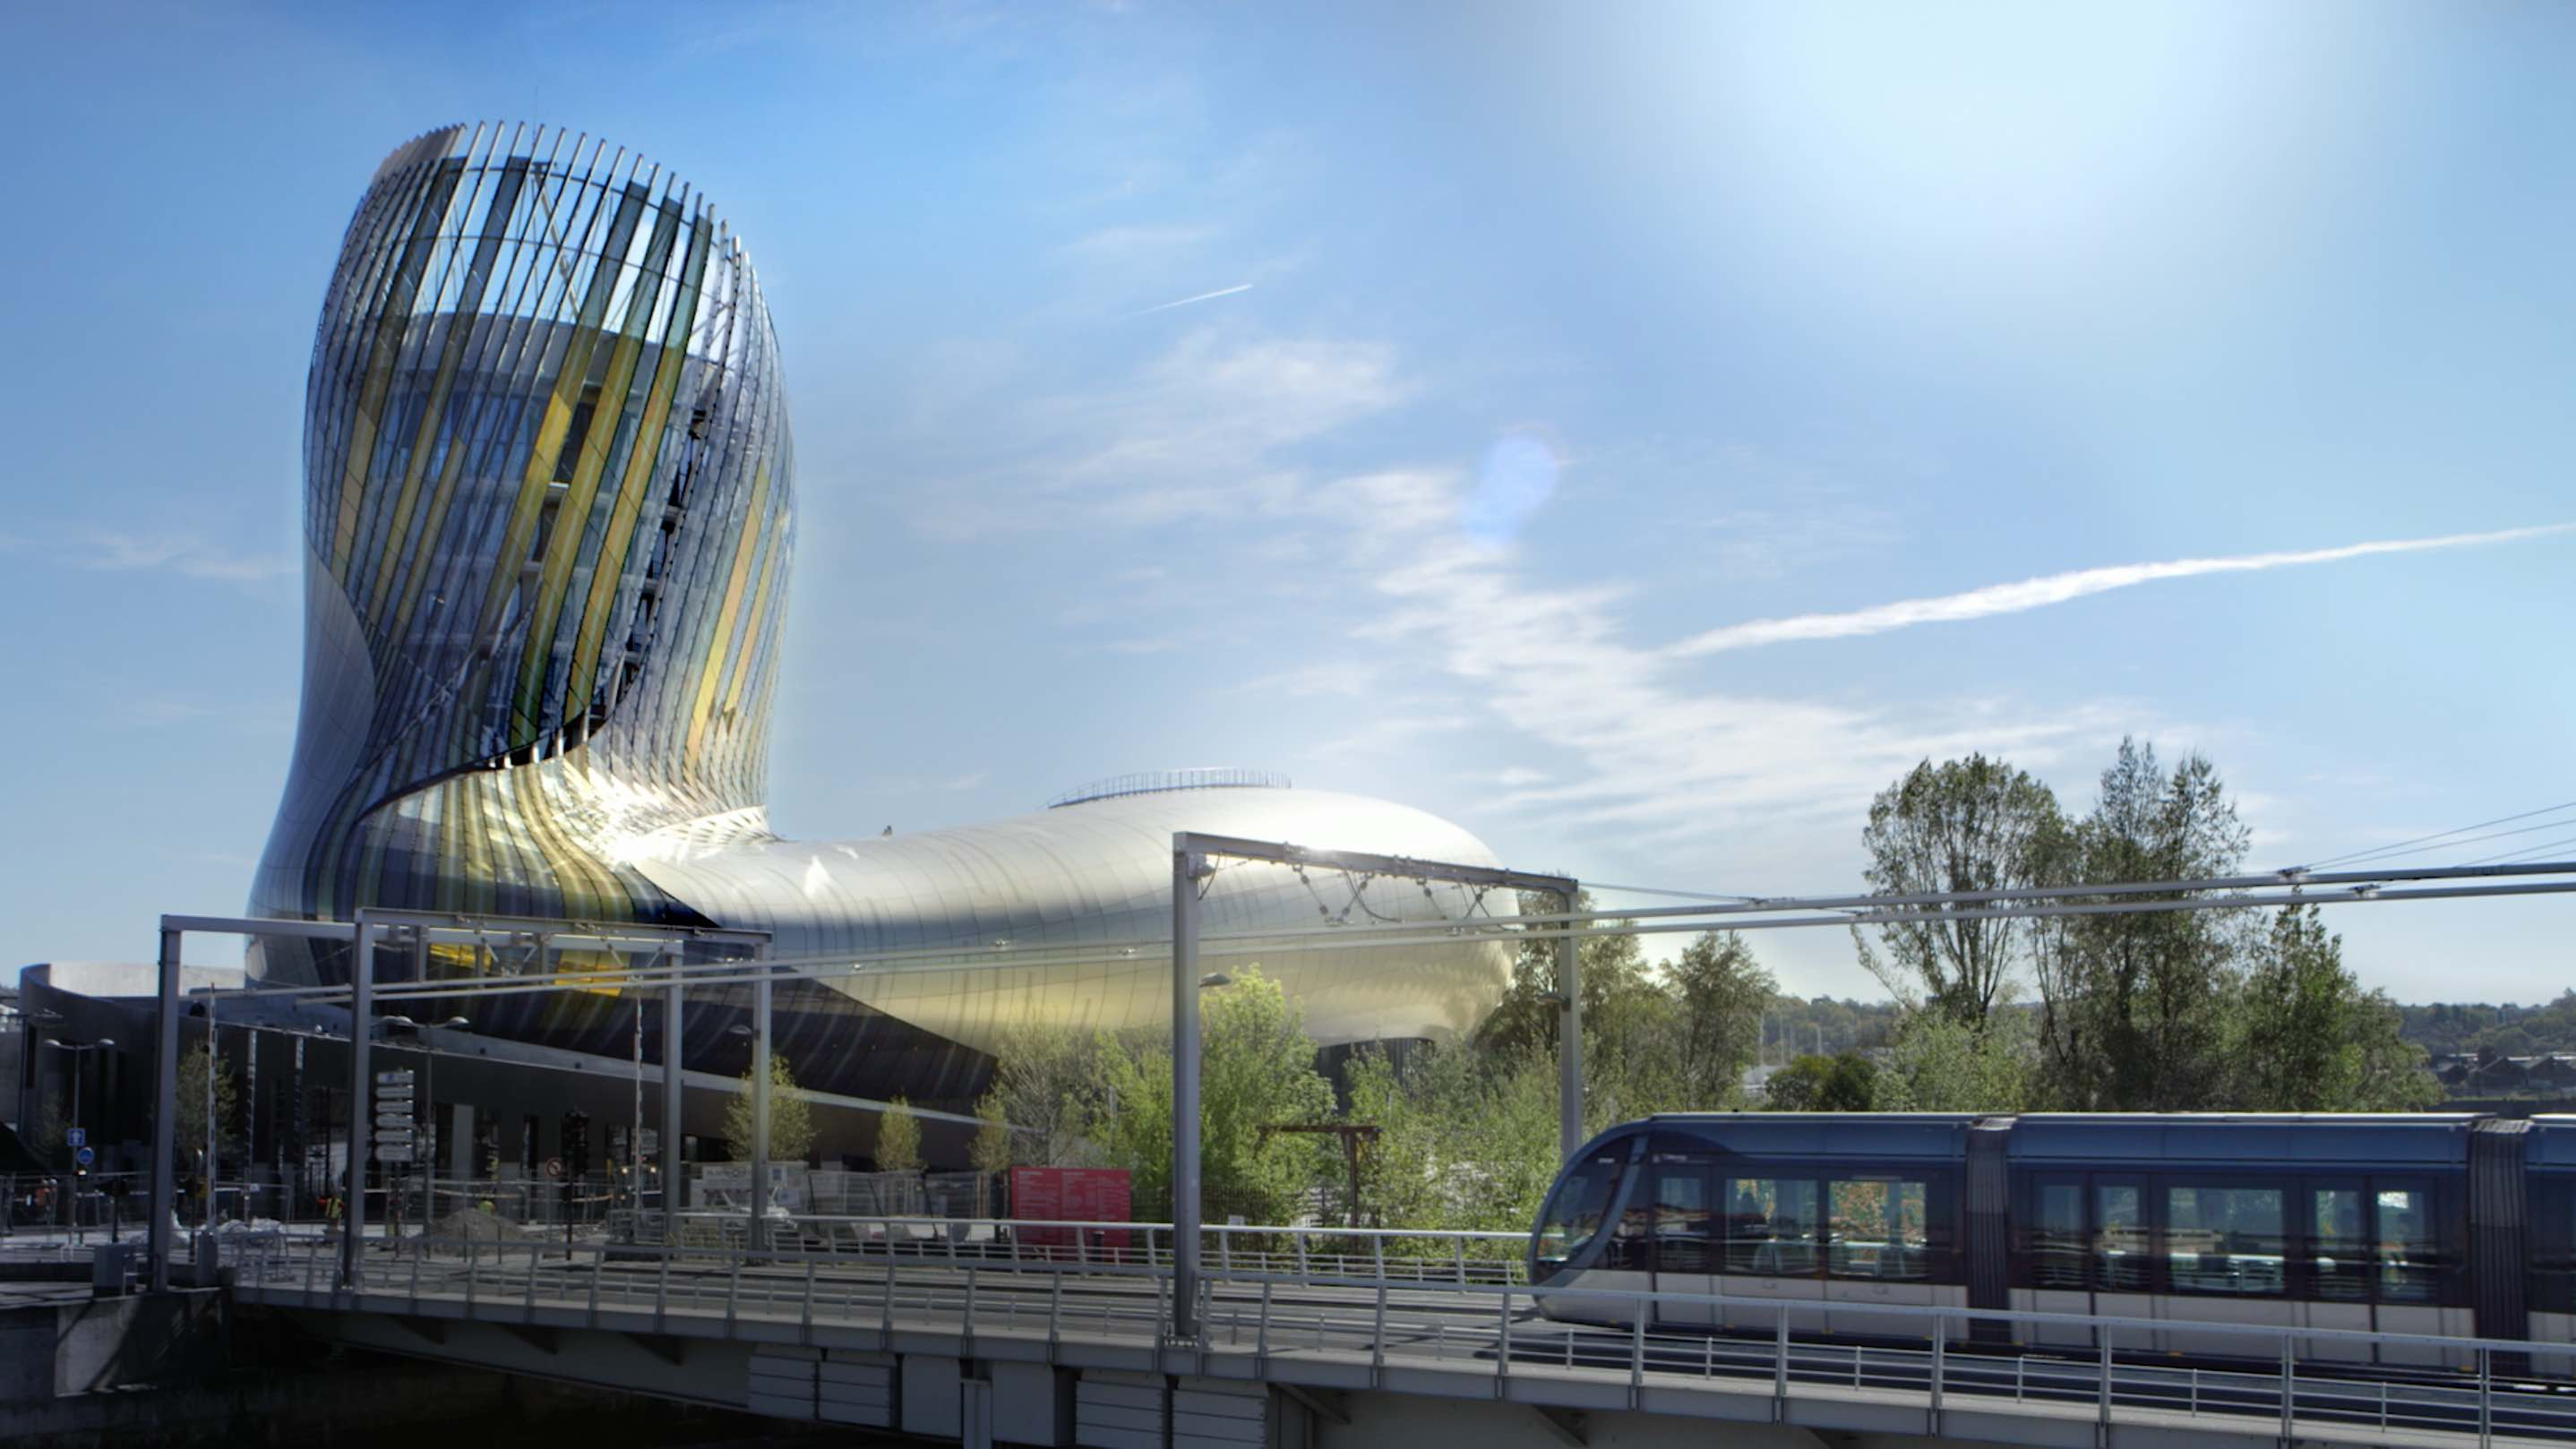 Bons Plans Bordeaux : Association TBM - Cité du Vin